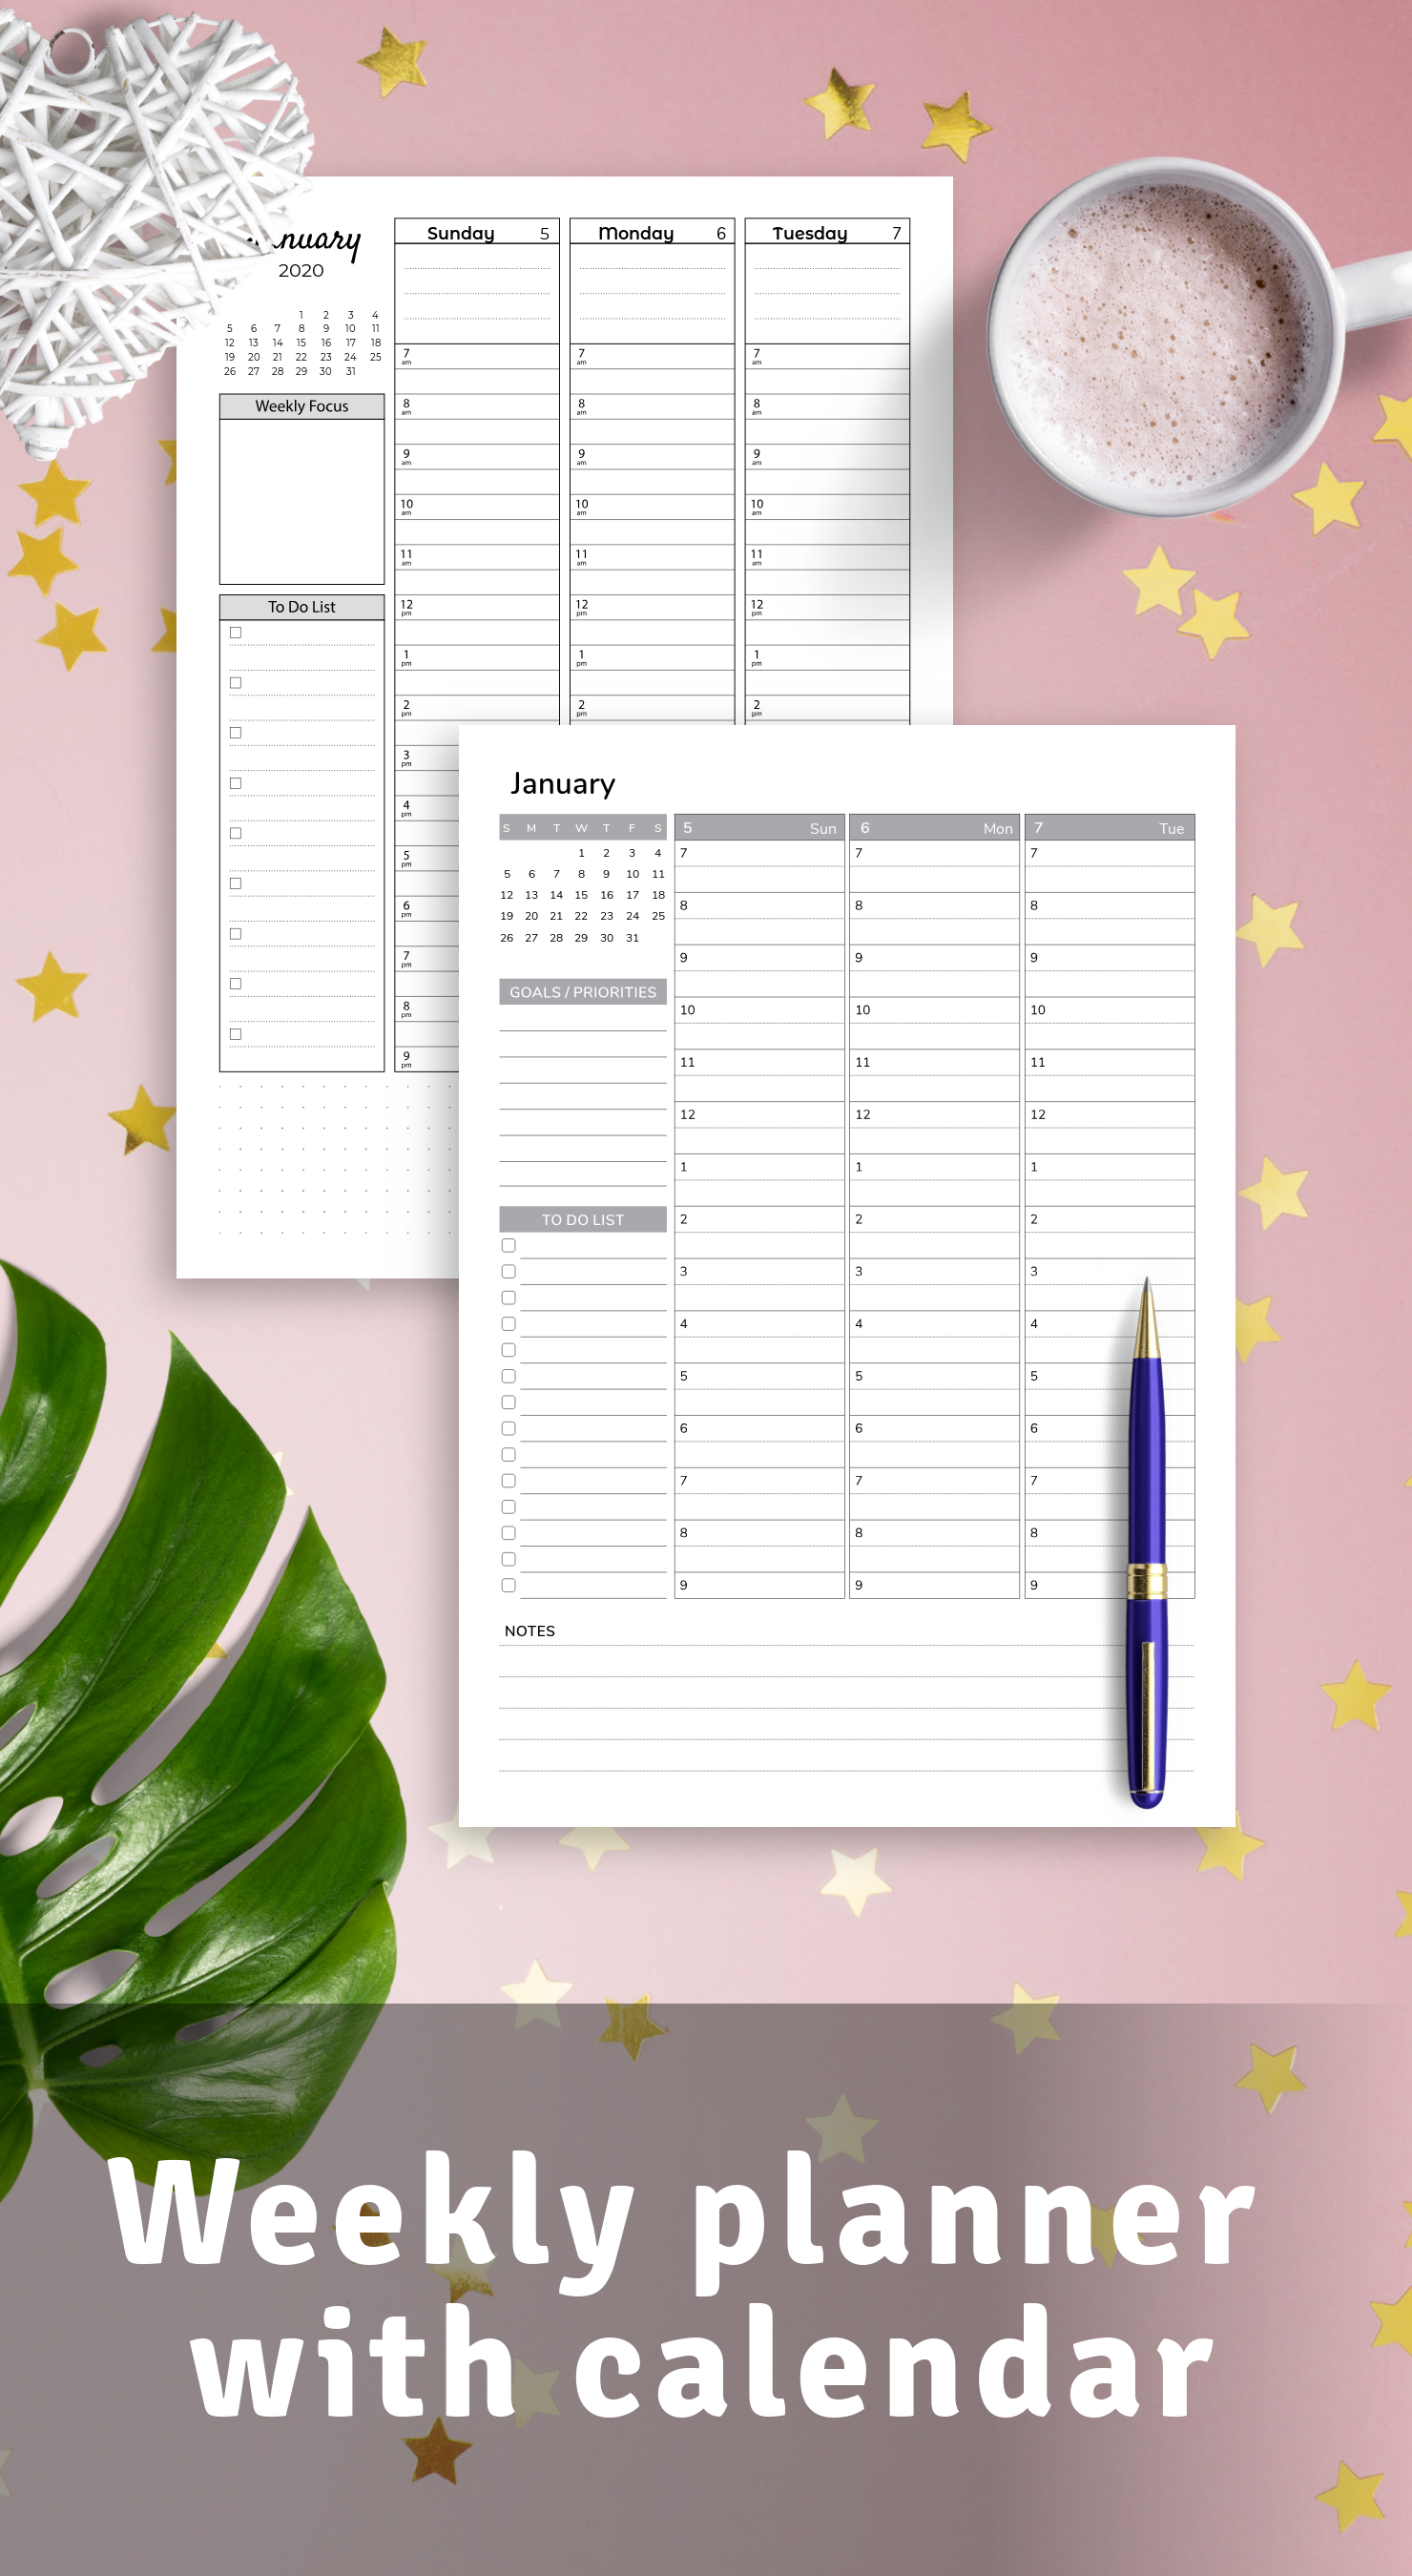 Weekly planners with calendar - Download printable PDF